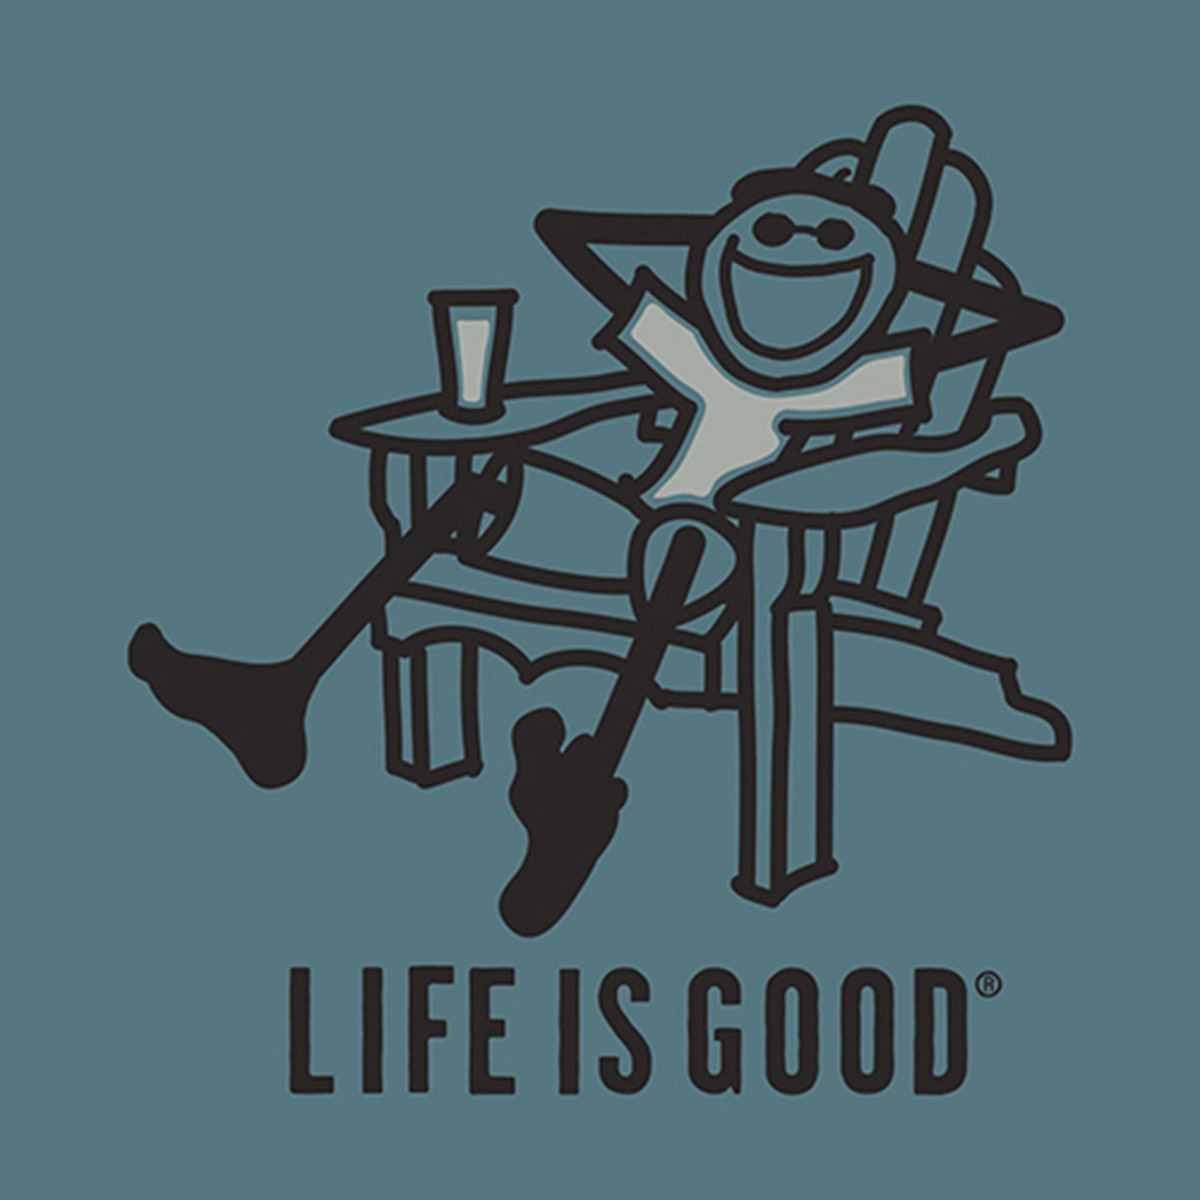 Life Is Good Clipart Adirondack Chair Life Is Good Beer